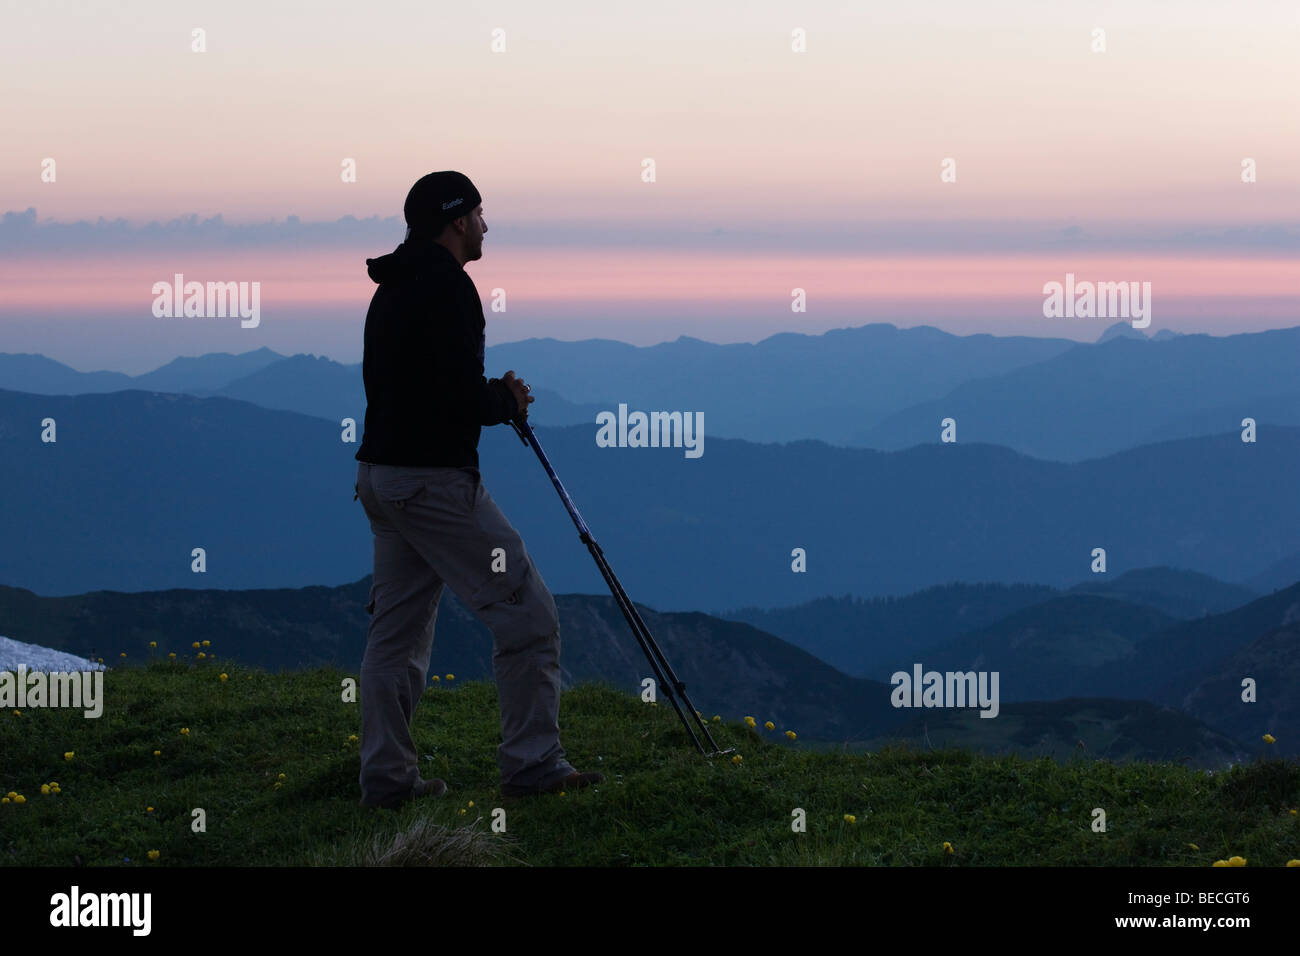 Hiker looking at mountains after sunset, Rofan Range, North Tyrol, Austria, Europe Stock Photo